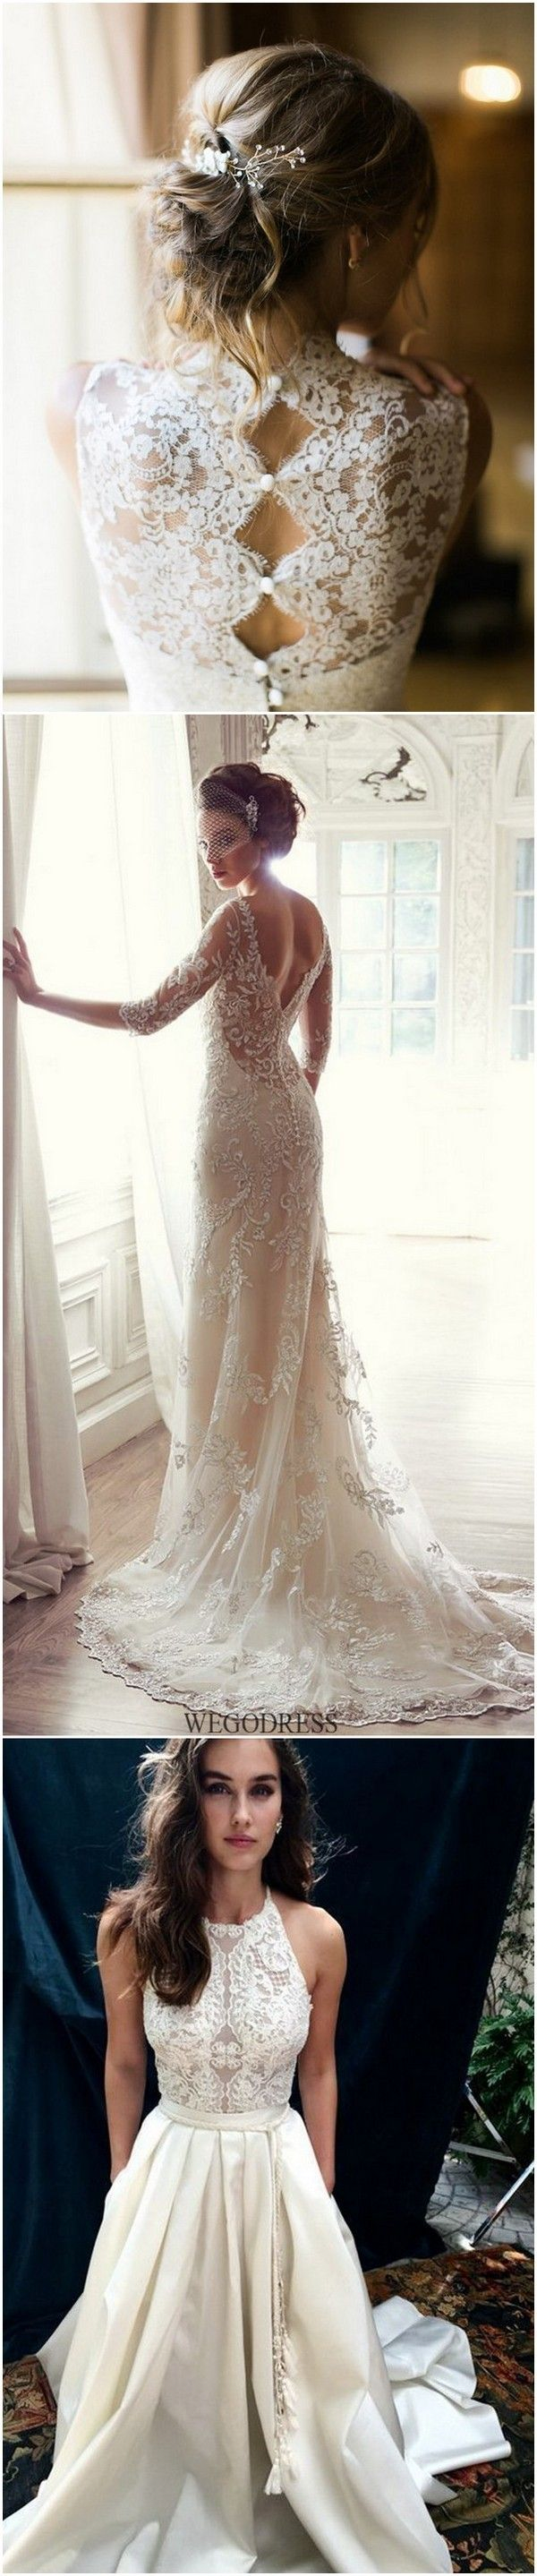 Top vintage wedding dresses for trends page of lace